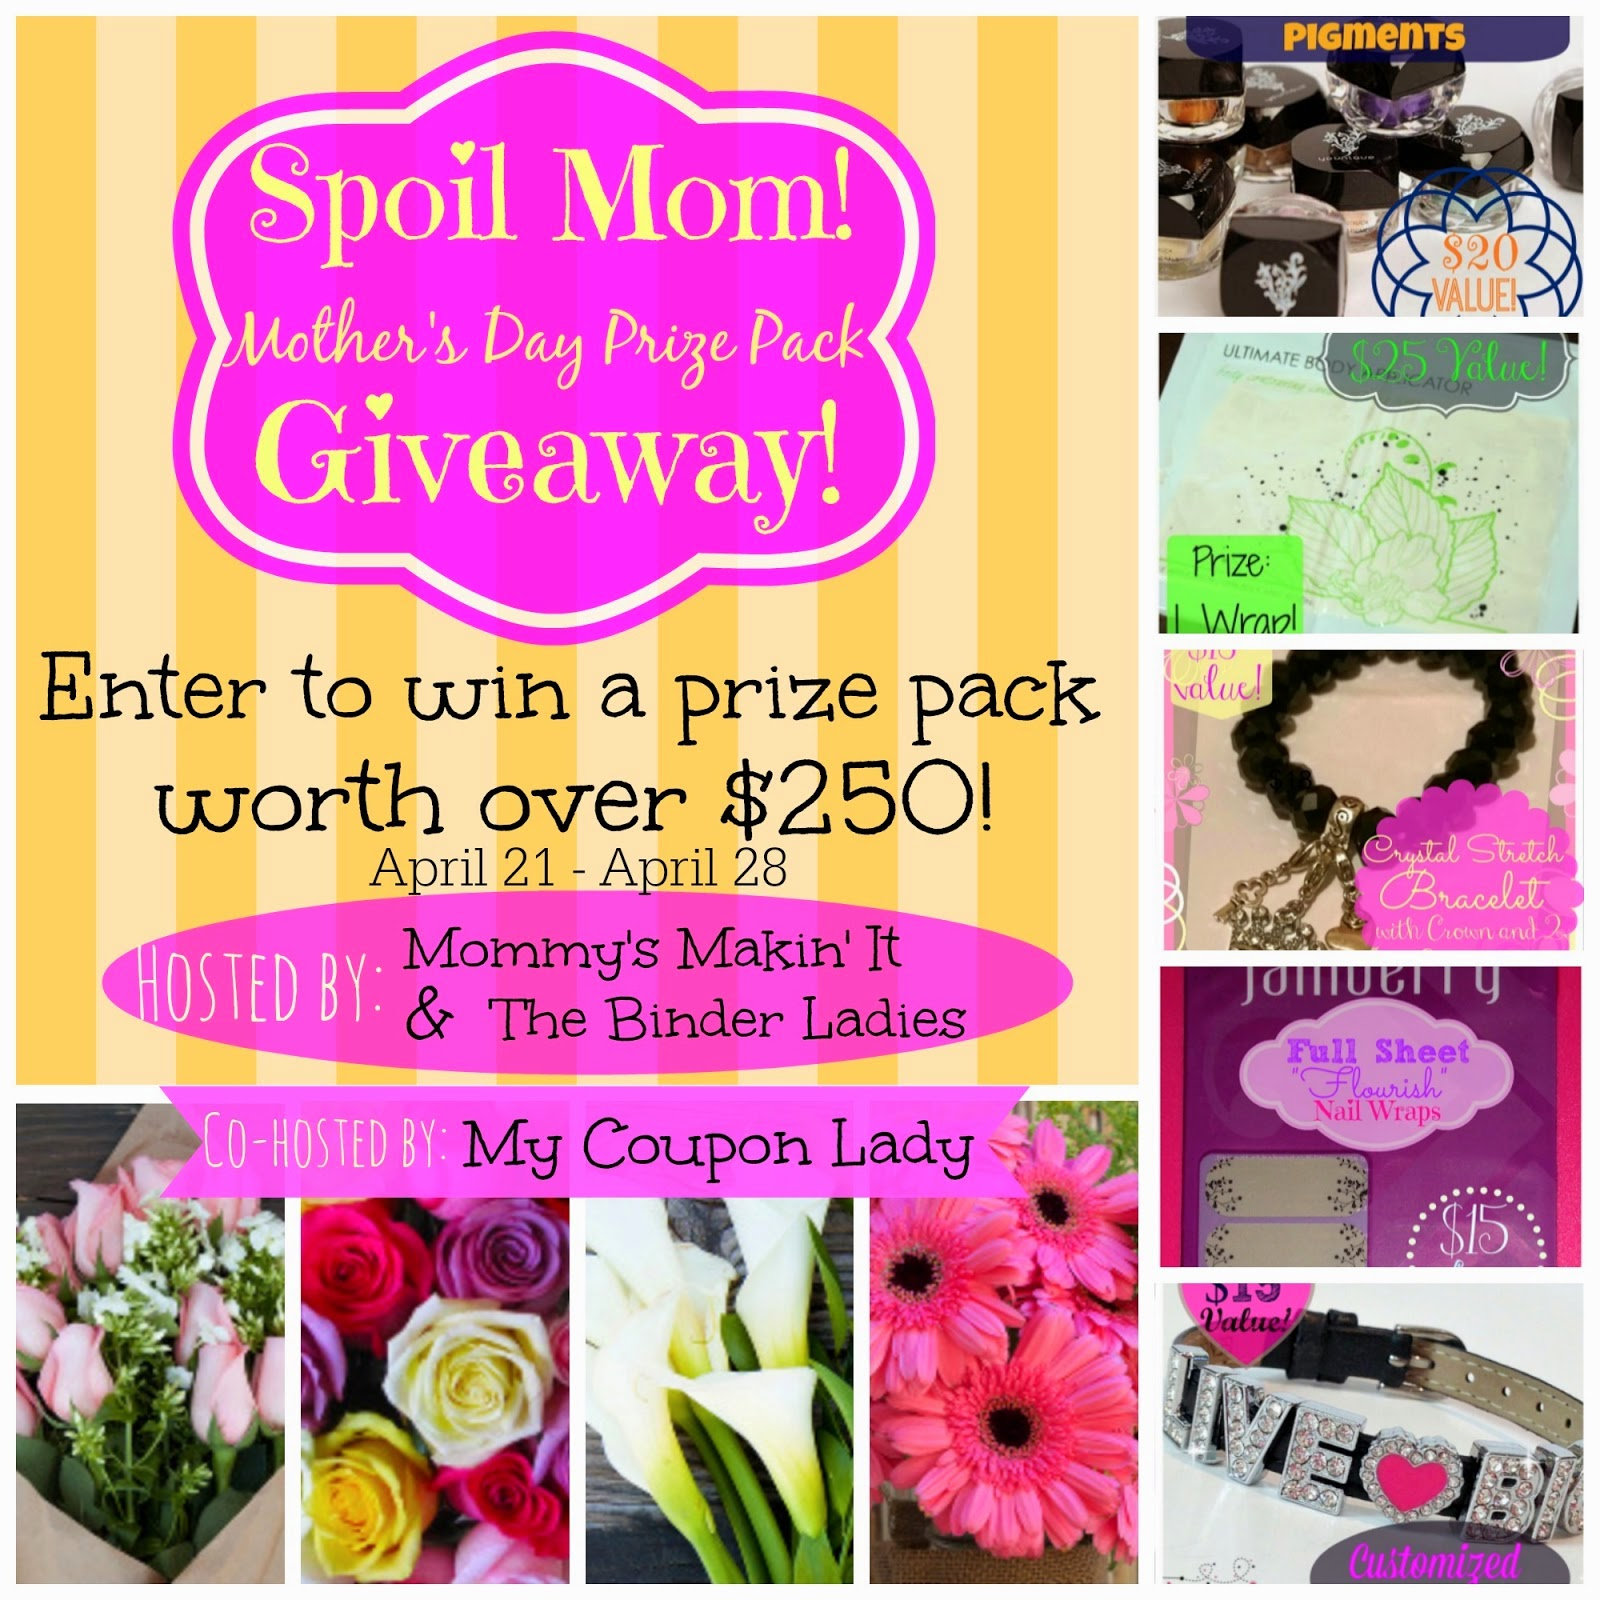 Spoil Mom - Mother's Day Giveaway